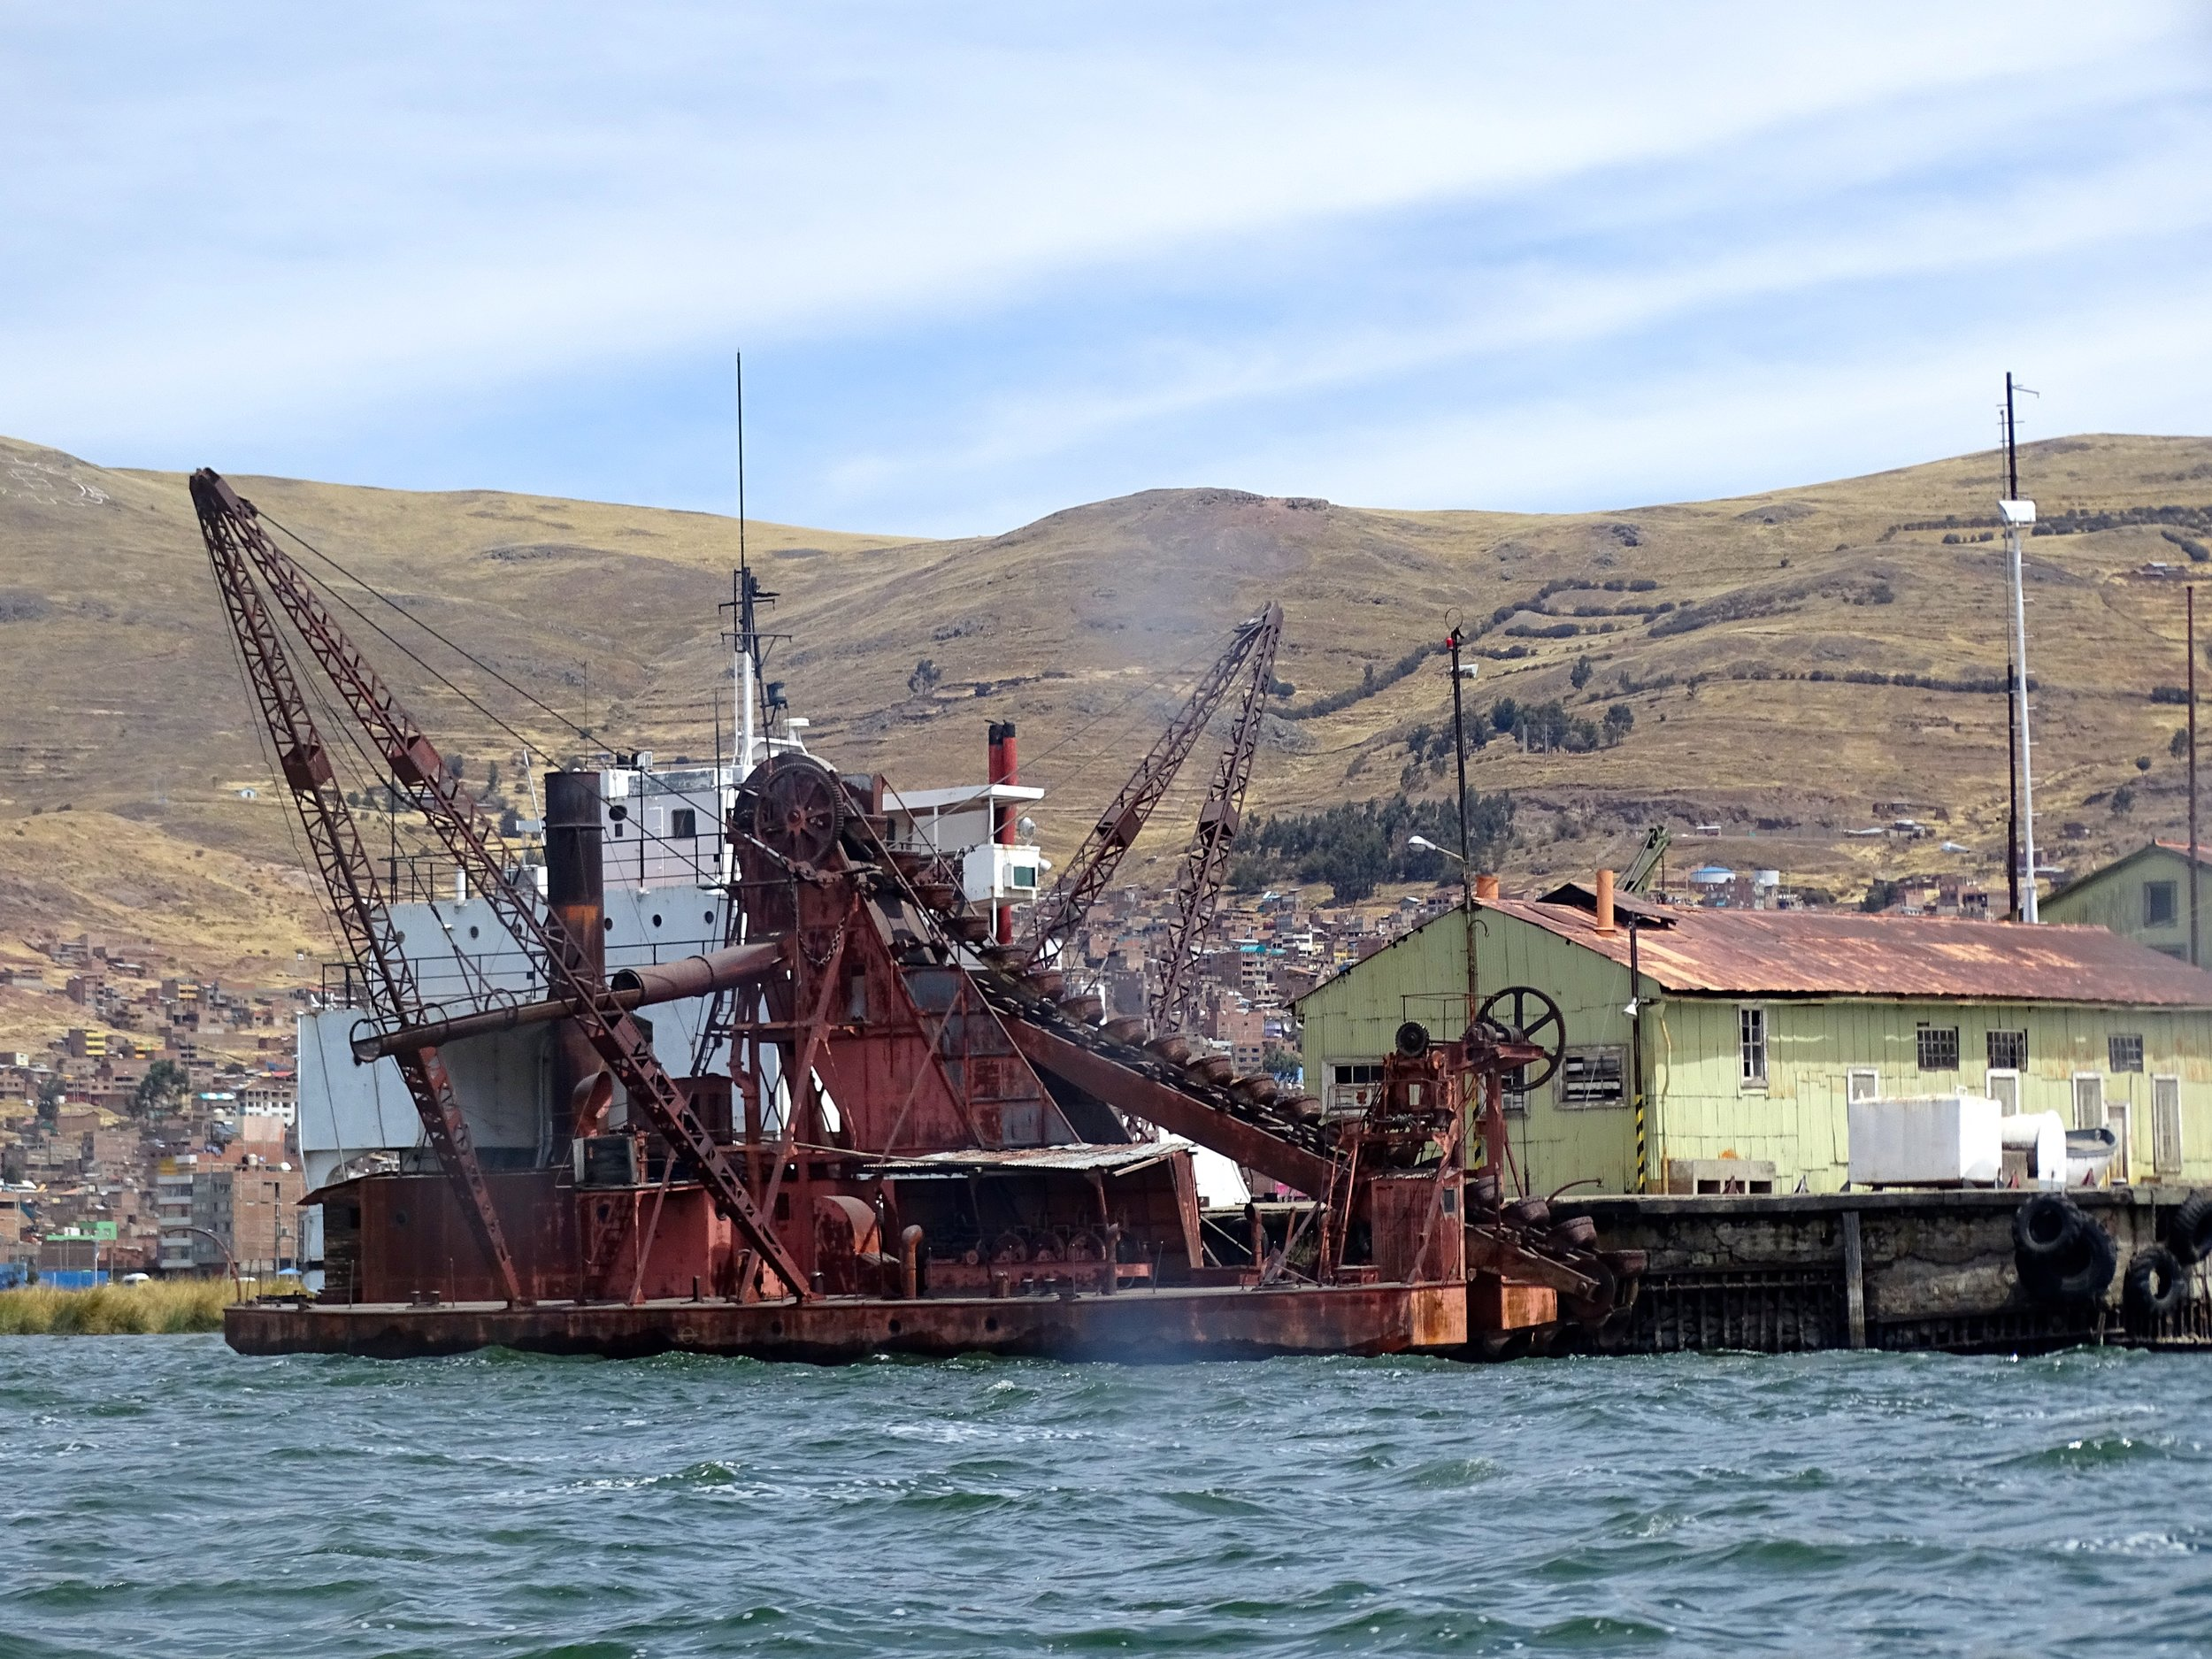 An old dredge along the waterfront in Puno.  I suspect this was used to open the channel out through the reed marsh, and make the passage much quicker.